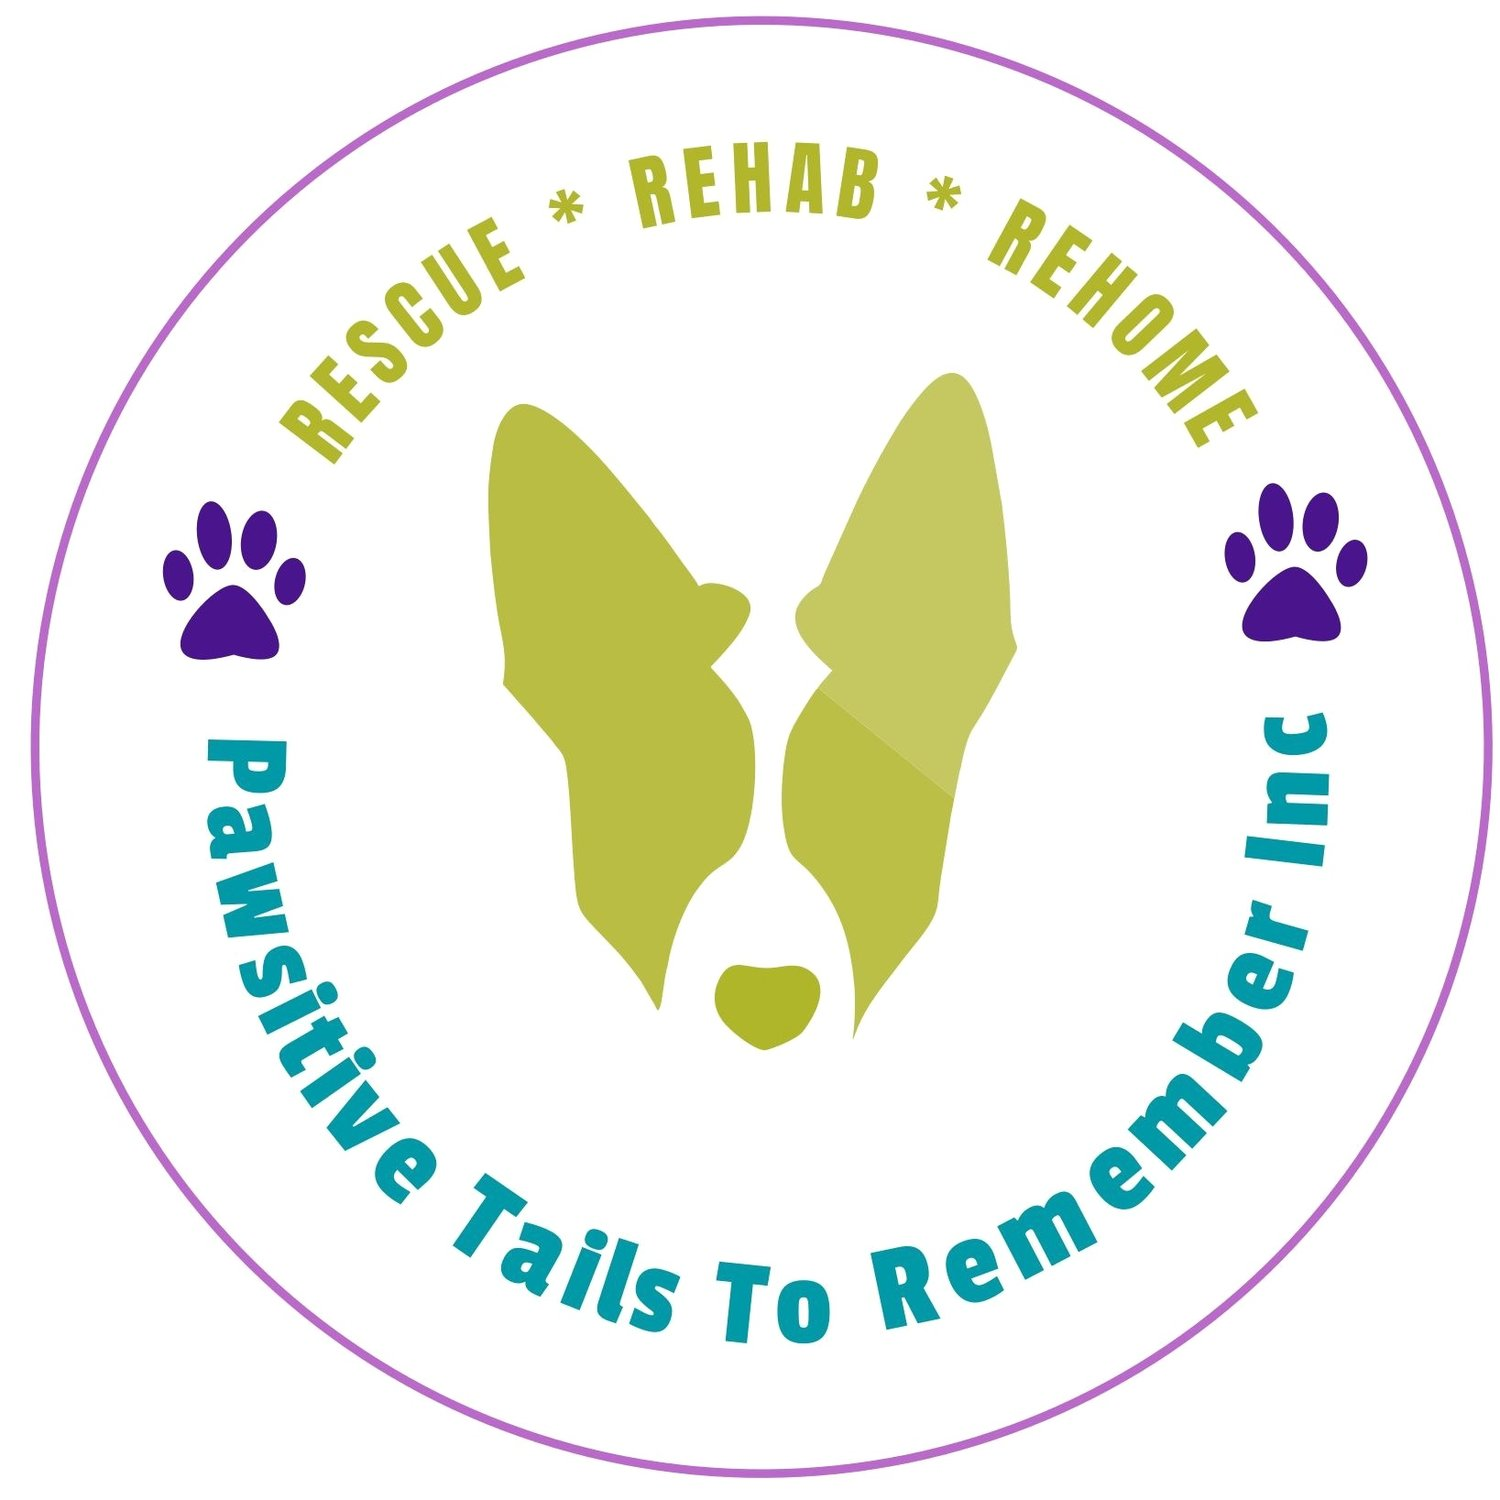 Pawsitive Tails to Remember Inc. 501c3